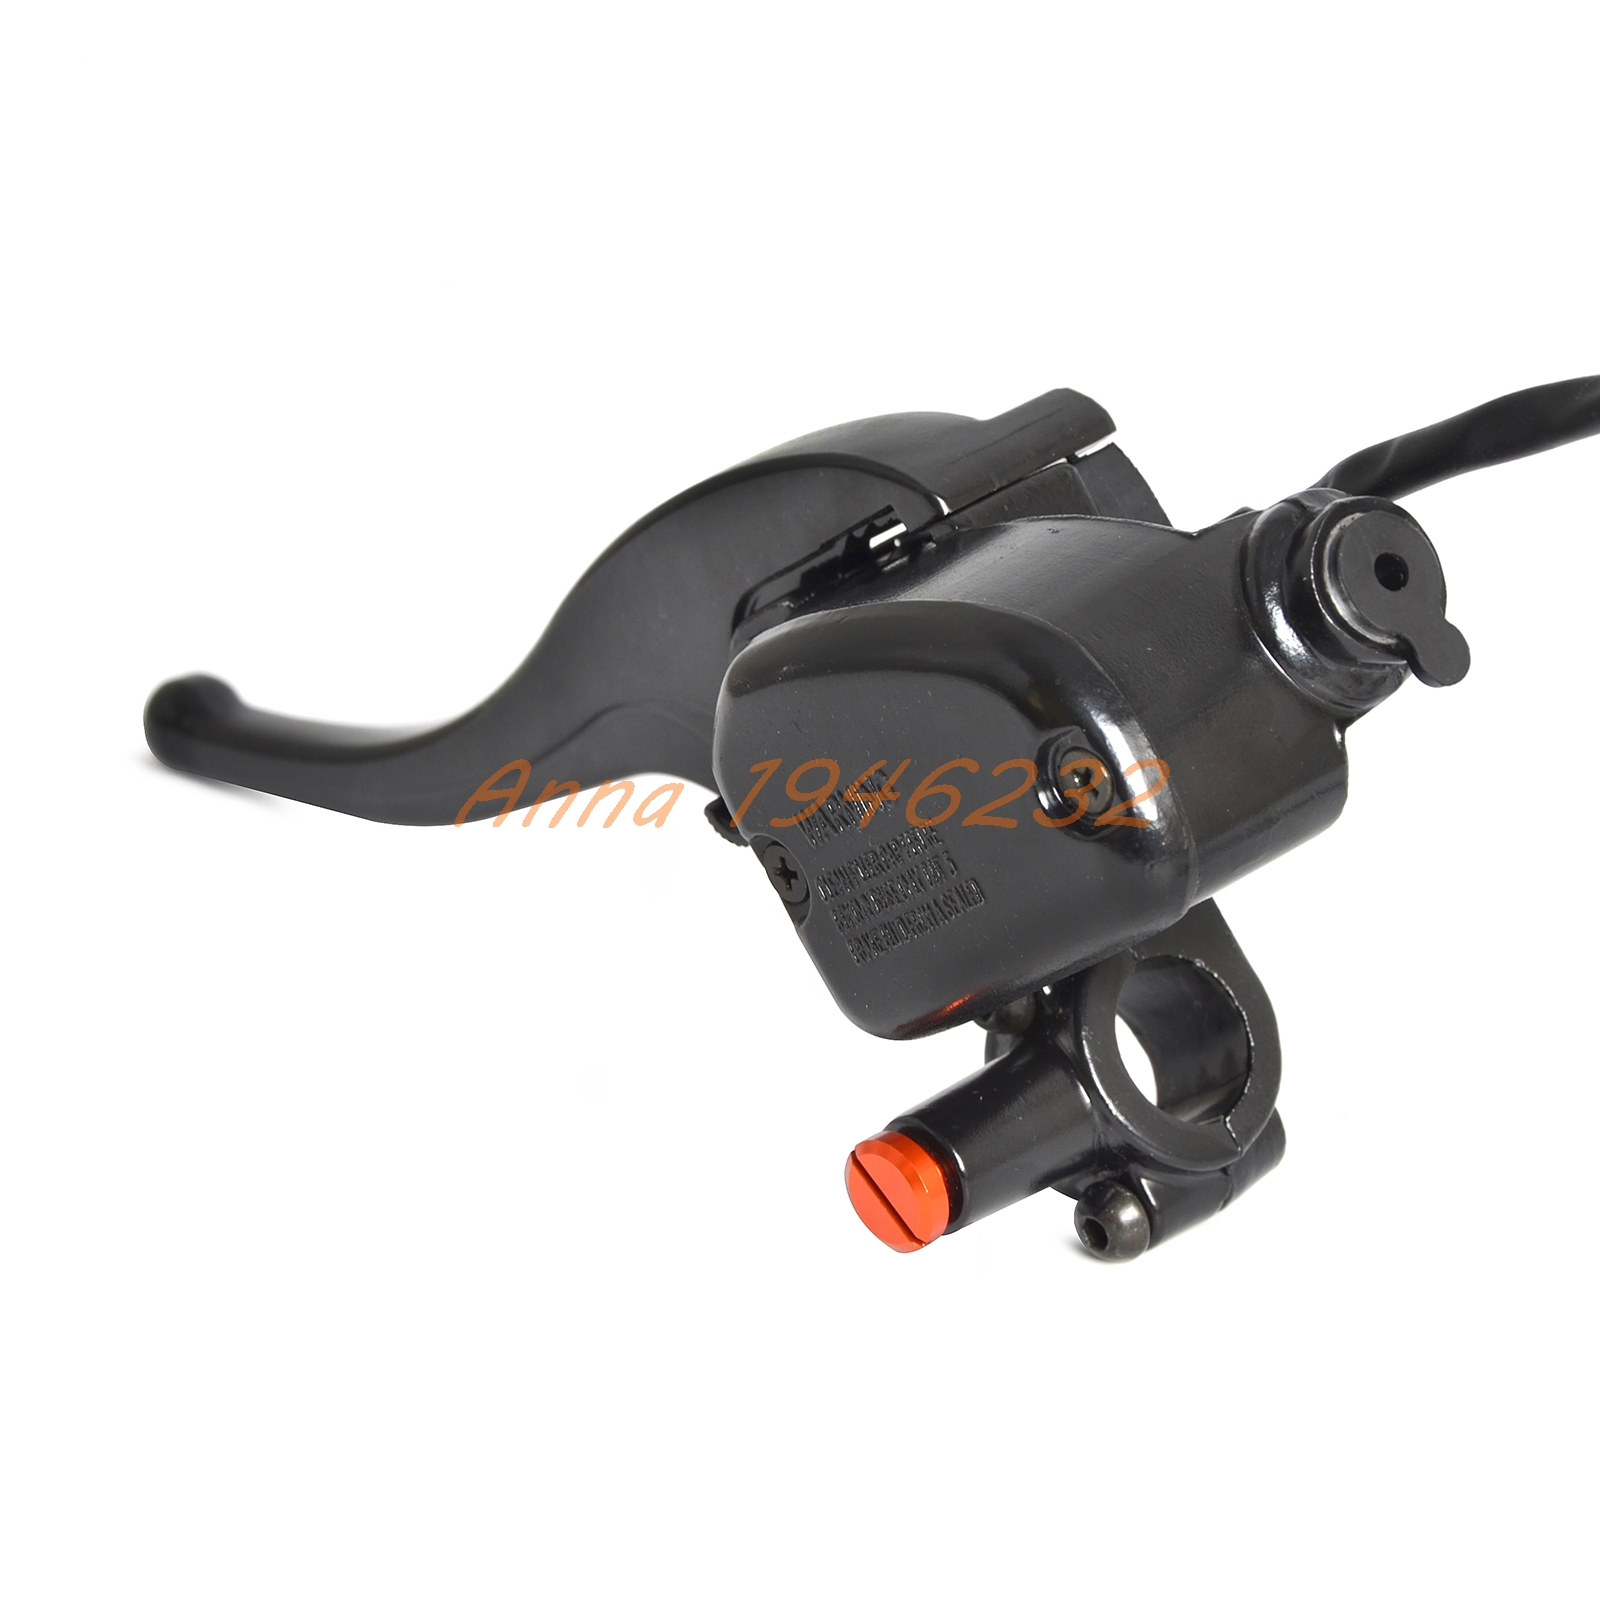 Left Hydraulic Brake Master Cylinder Lever Assembly For Palaris ATV UTV SCRAMBLER 500 TRAIL BLAZER 330 BOSS FOREST 800 mother and daughter clothes short sleeved t shirt dresses family matching outfits baby girl clothes girls clothing long dress